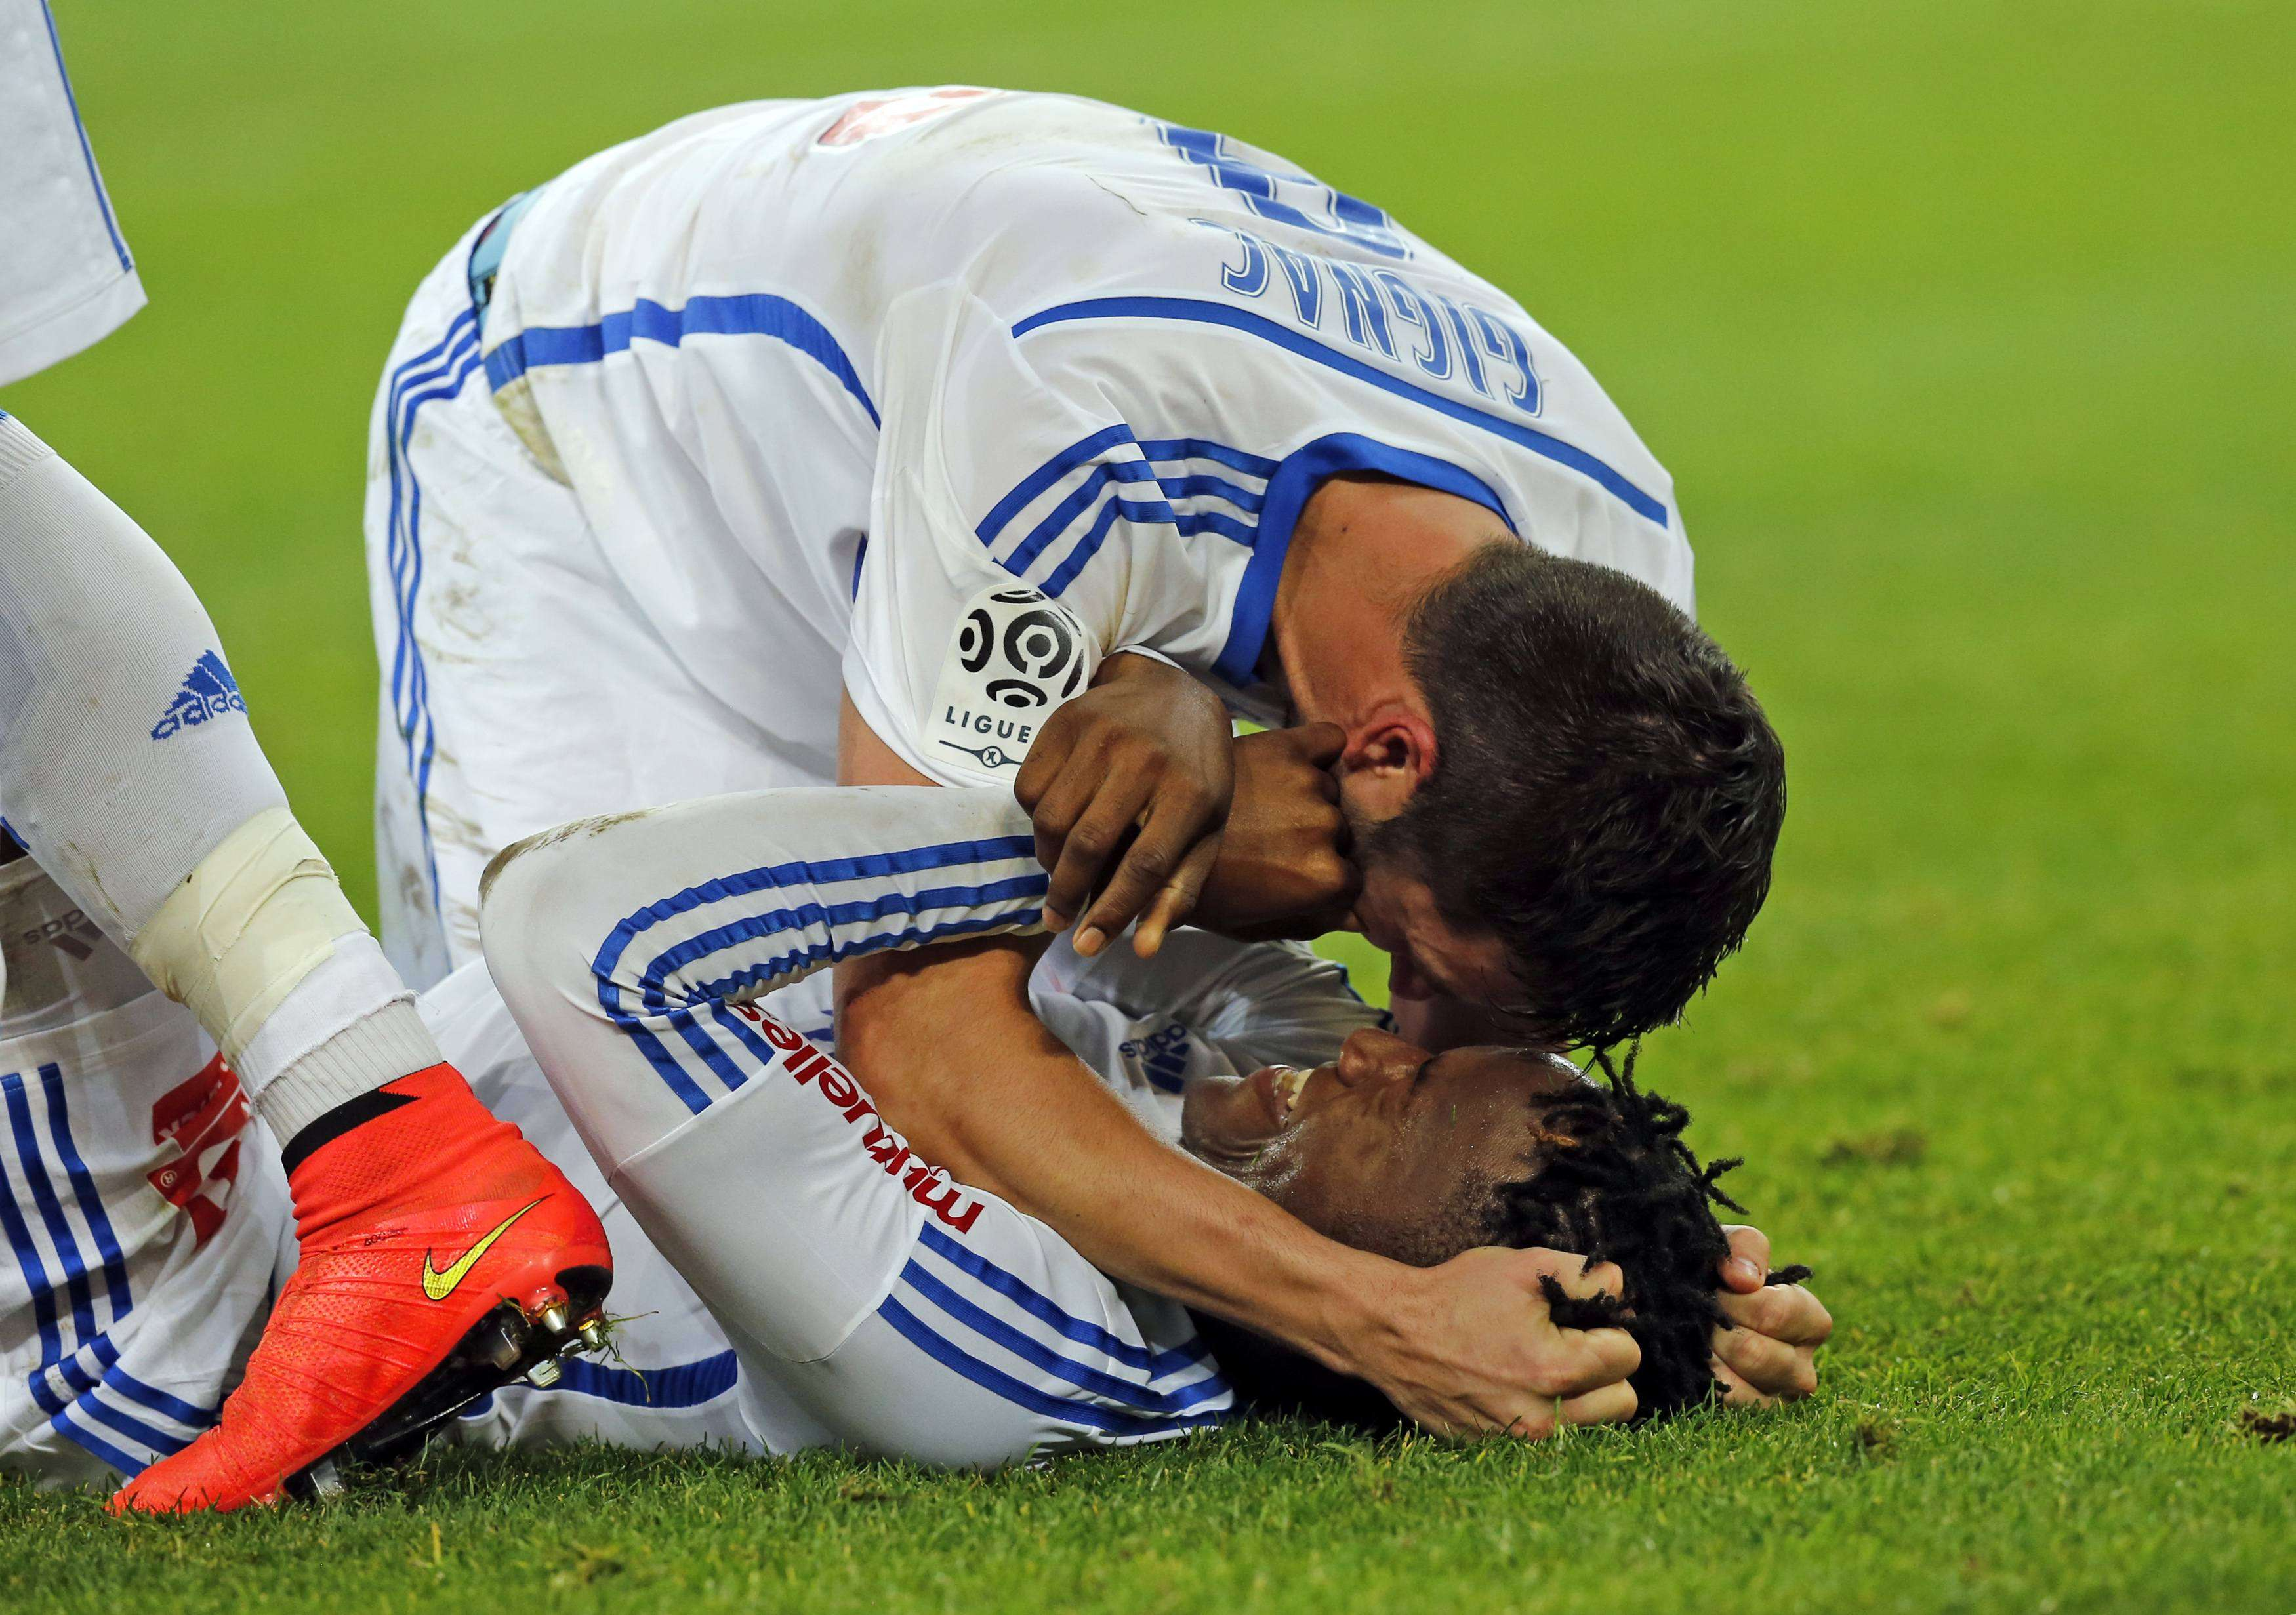 Olympique Marseille's Michy Batshuayi (on the ground) celebrates with teammate Andre-Pierre Gignac after scoring against Girondins Bordeaux during their French Ligue 1 soccer match at the Velodrome stadium in Marseille, November 23, 2014. REUTERS/Jean-Paul Pelissier (FRANCE - Tags: SPORT SOCCER) Foto: JEAN-PAUL PELISSIER/REUTERS